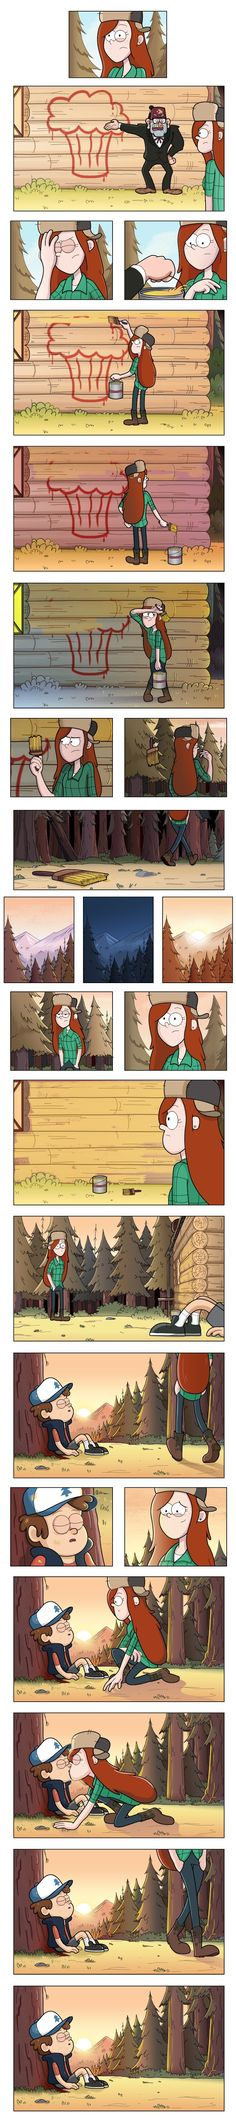 I'm part of many fandoms. This is mostly my Gravity Falls fandom side or my Judylwb Idoov fandom Dipper And Wendy, Dipper And Mabel, Gravity Falls Comics, Gravity Falls Art, Gravity Falls Dipper, Gavity Falls, Desenhos Gravity Falls, Reverse Falls, Billdip